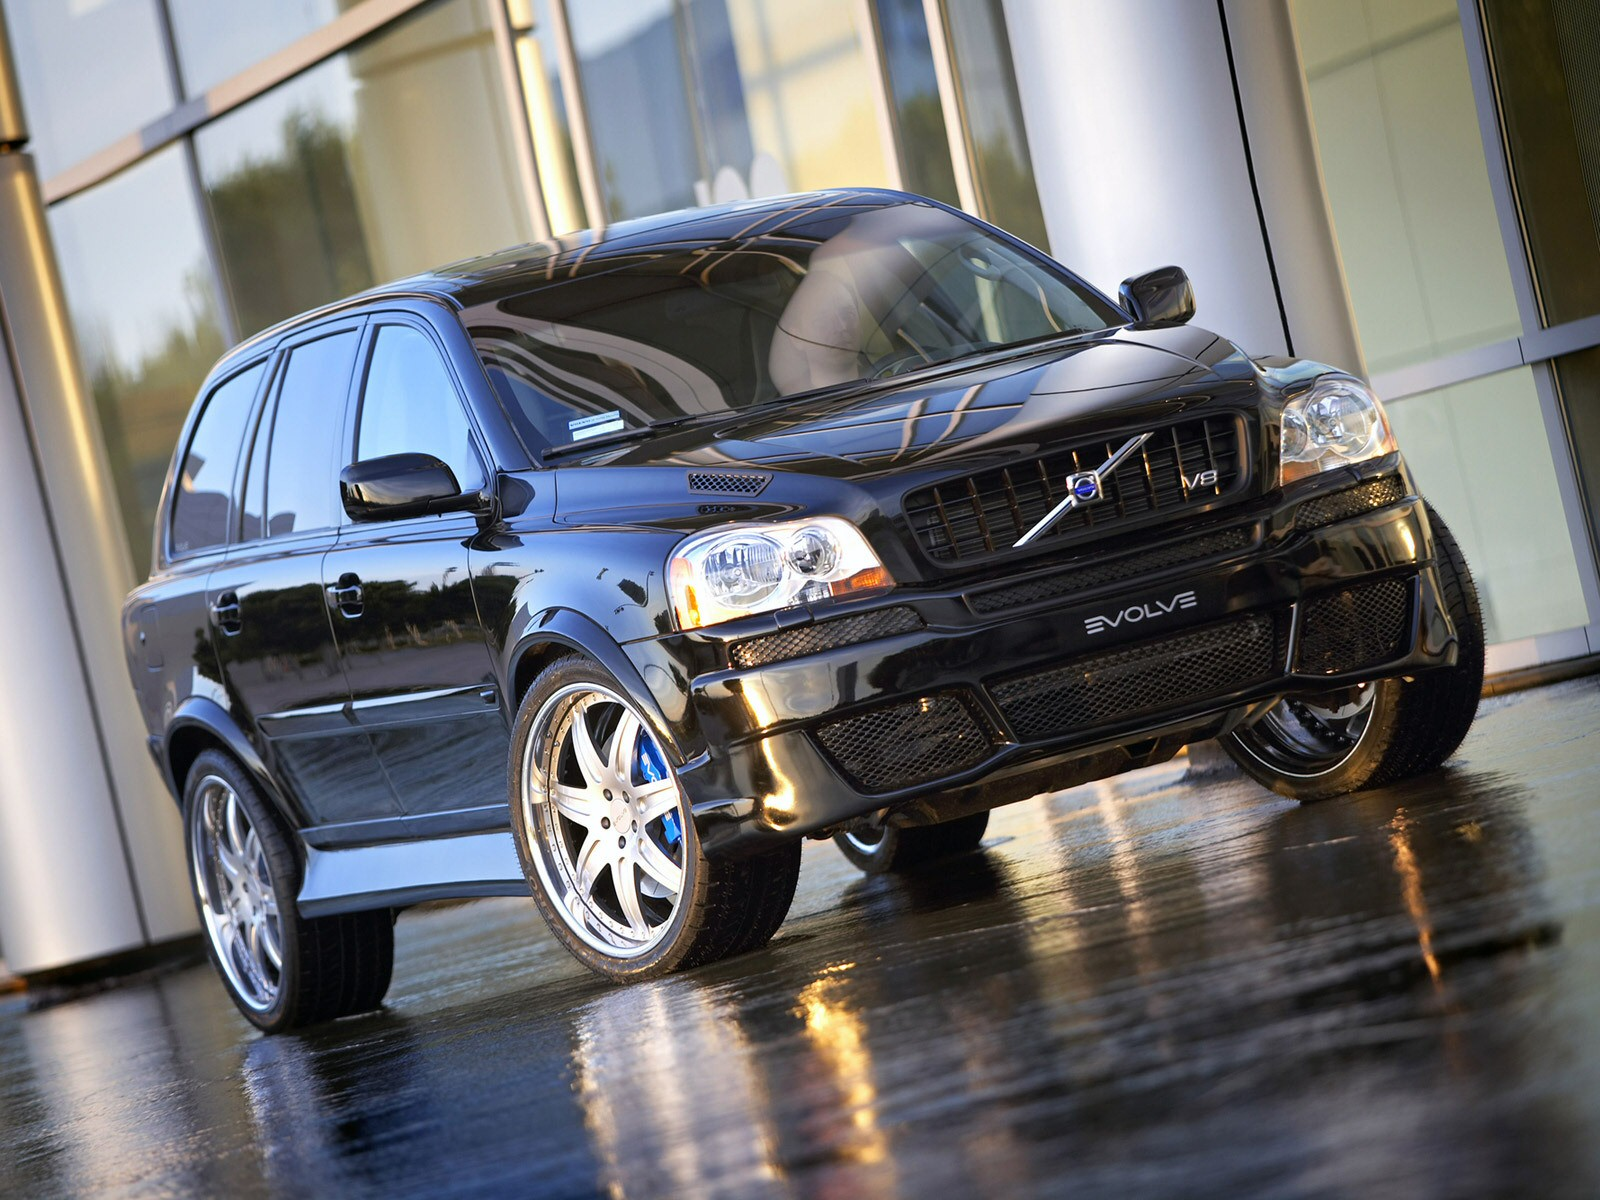 2006 evolve volvo xc90 v 8 suv tuning wallpaper. Black Bedroom Furniture Sets. Home Design Ideas